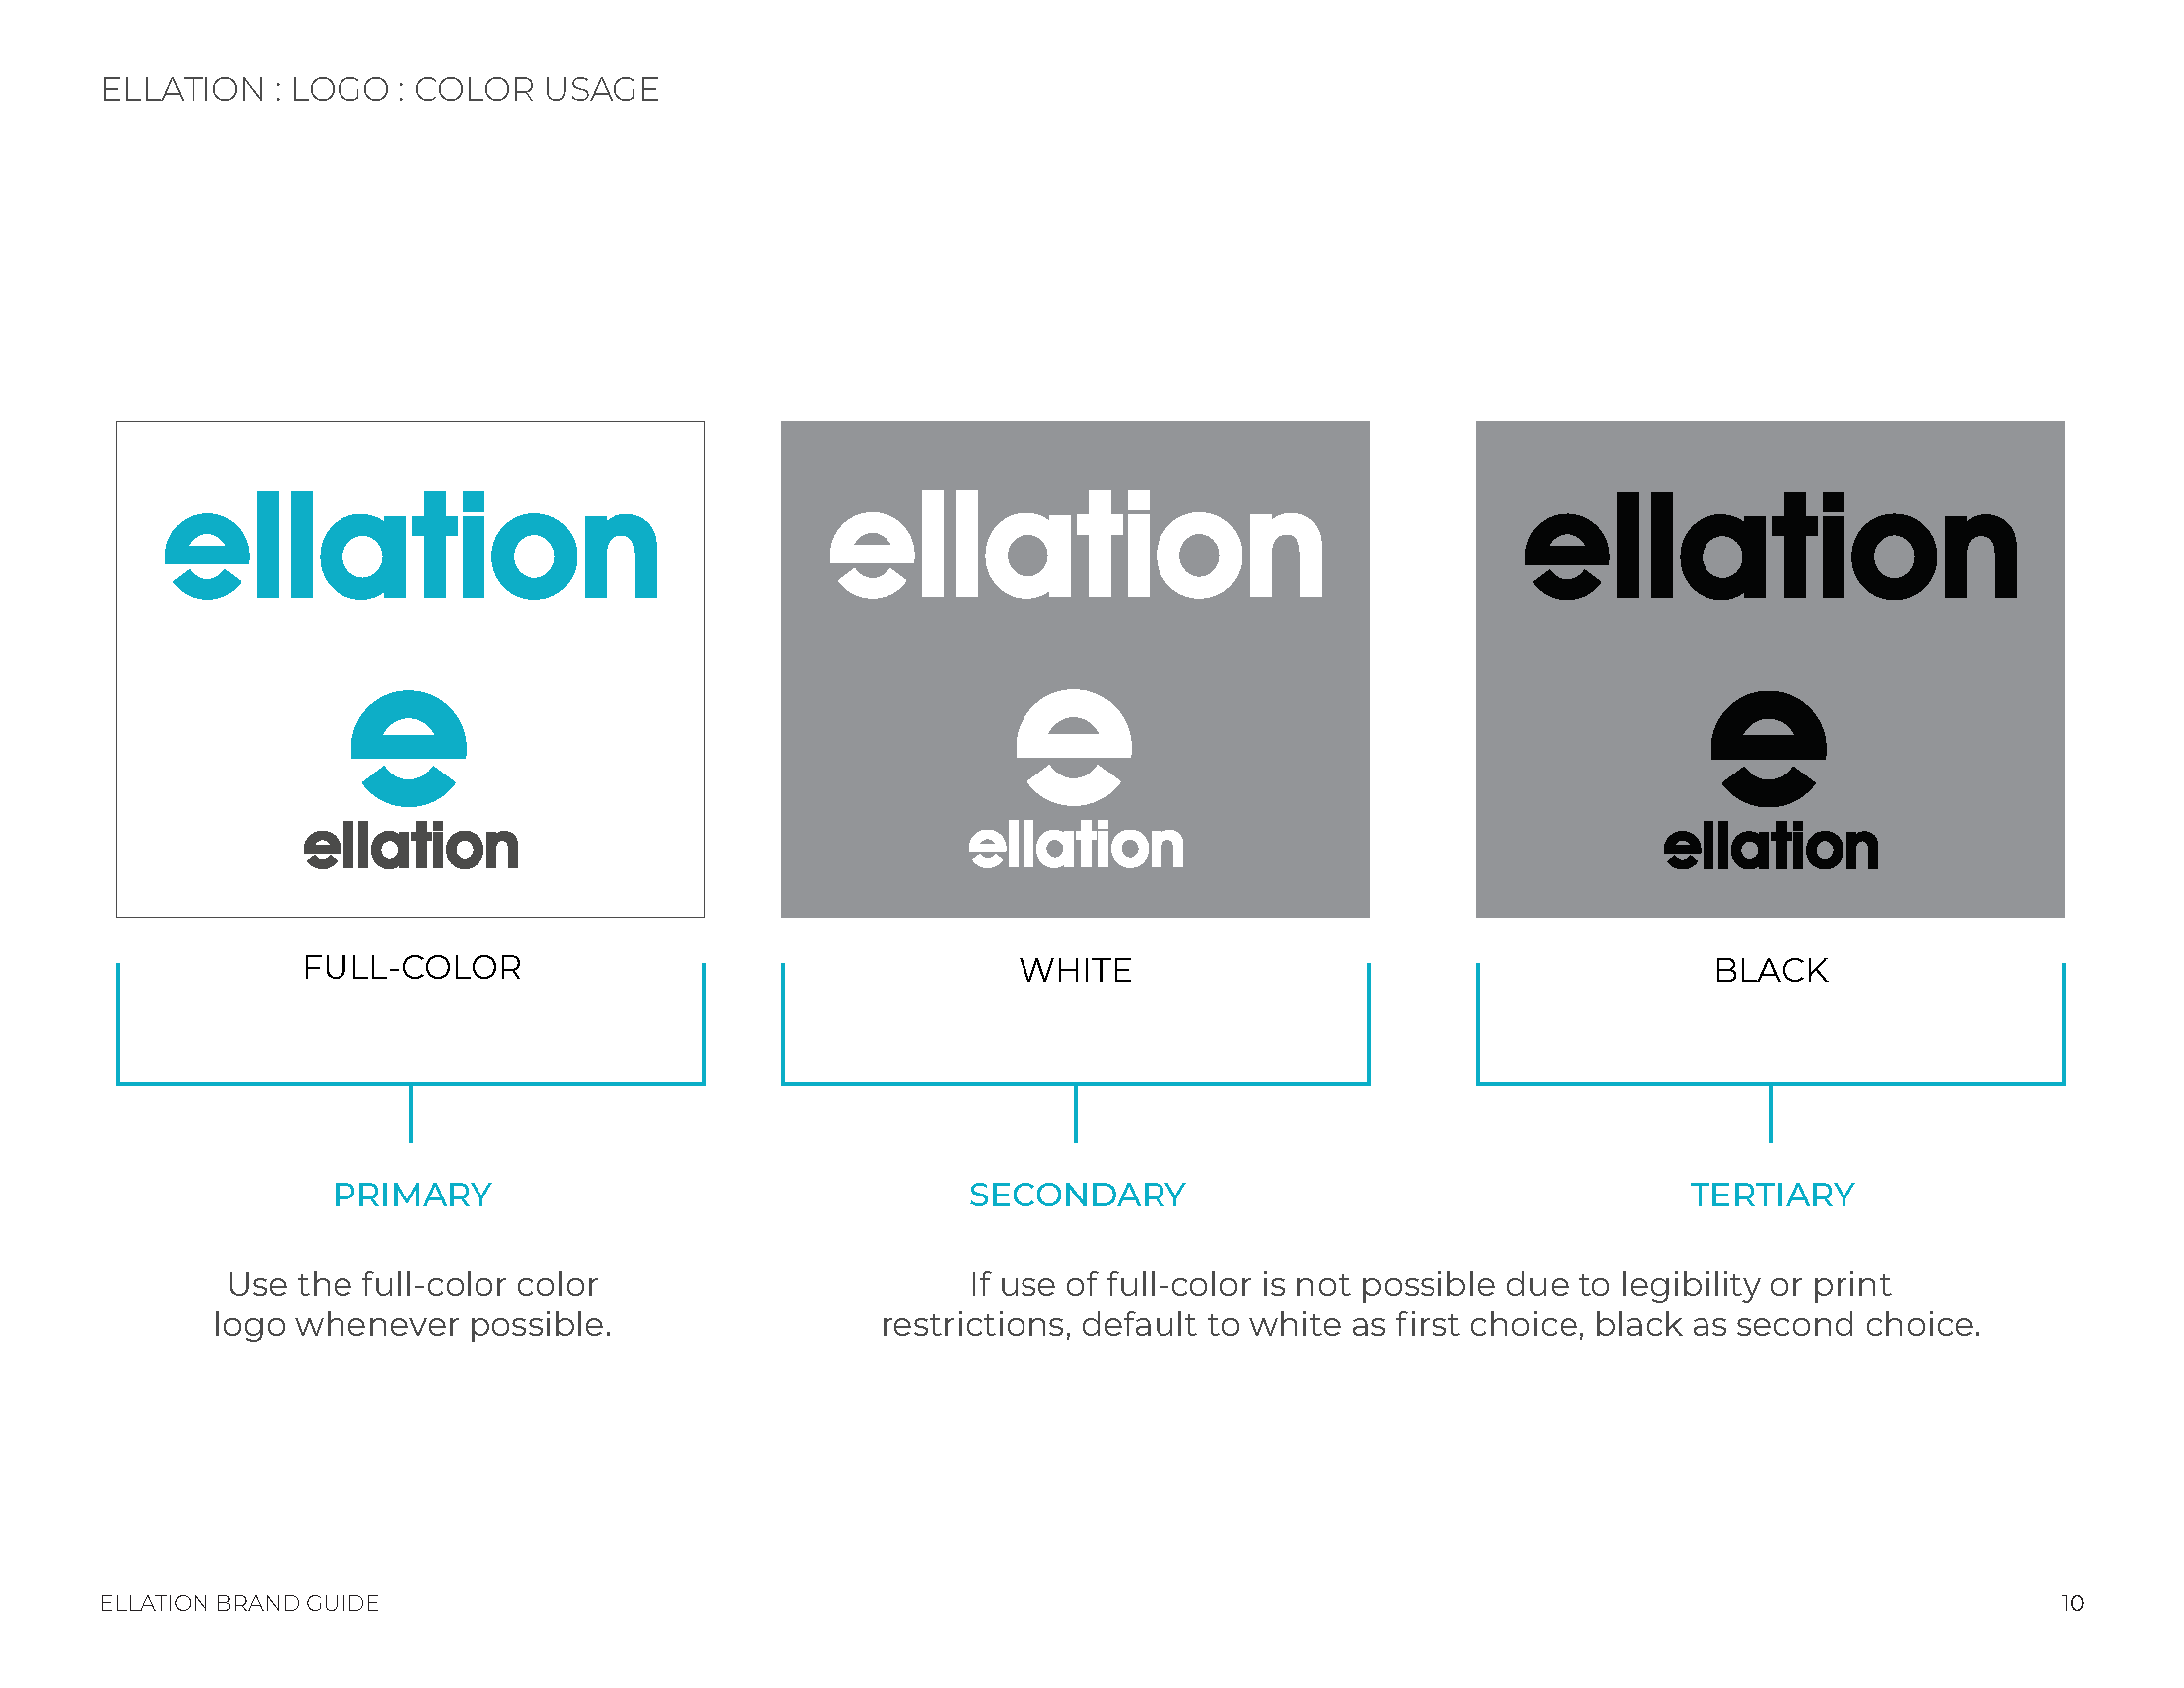 Ellation-Style Guide_Page_11.png